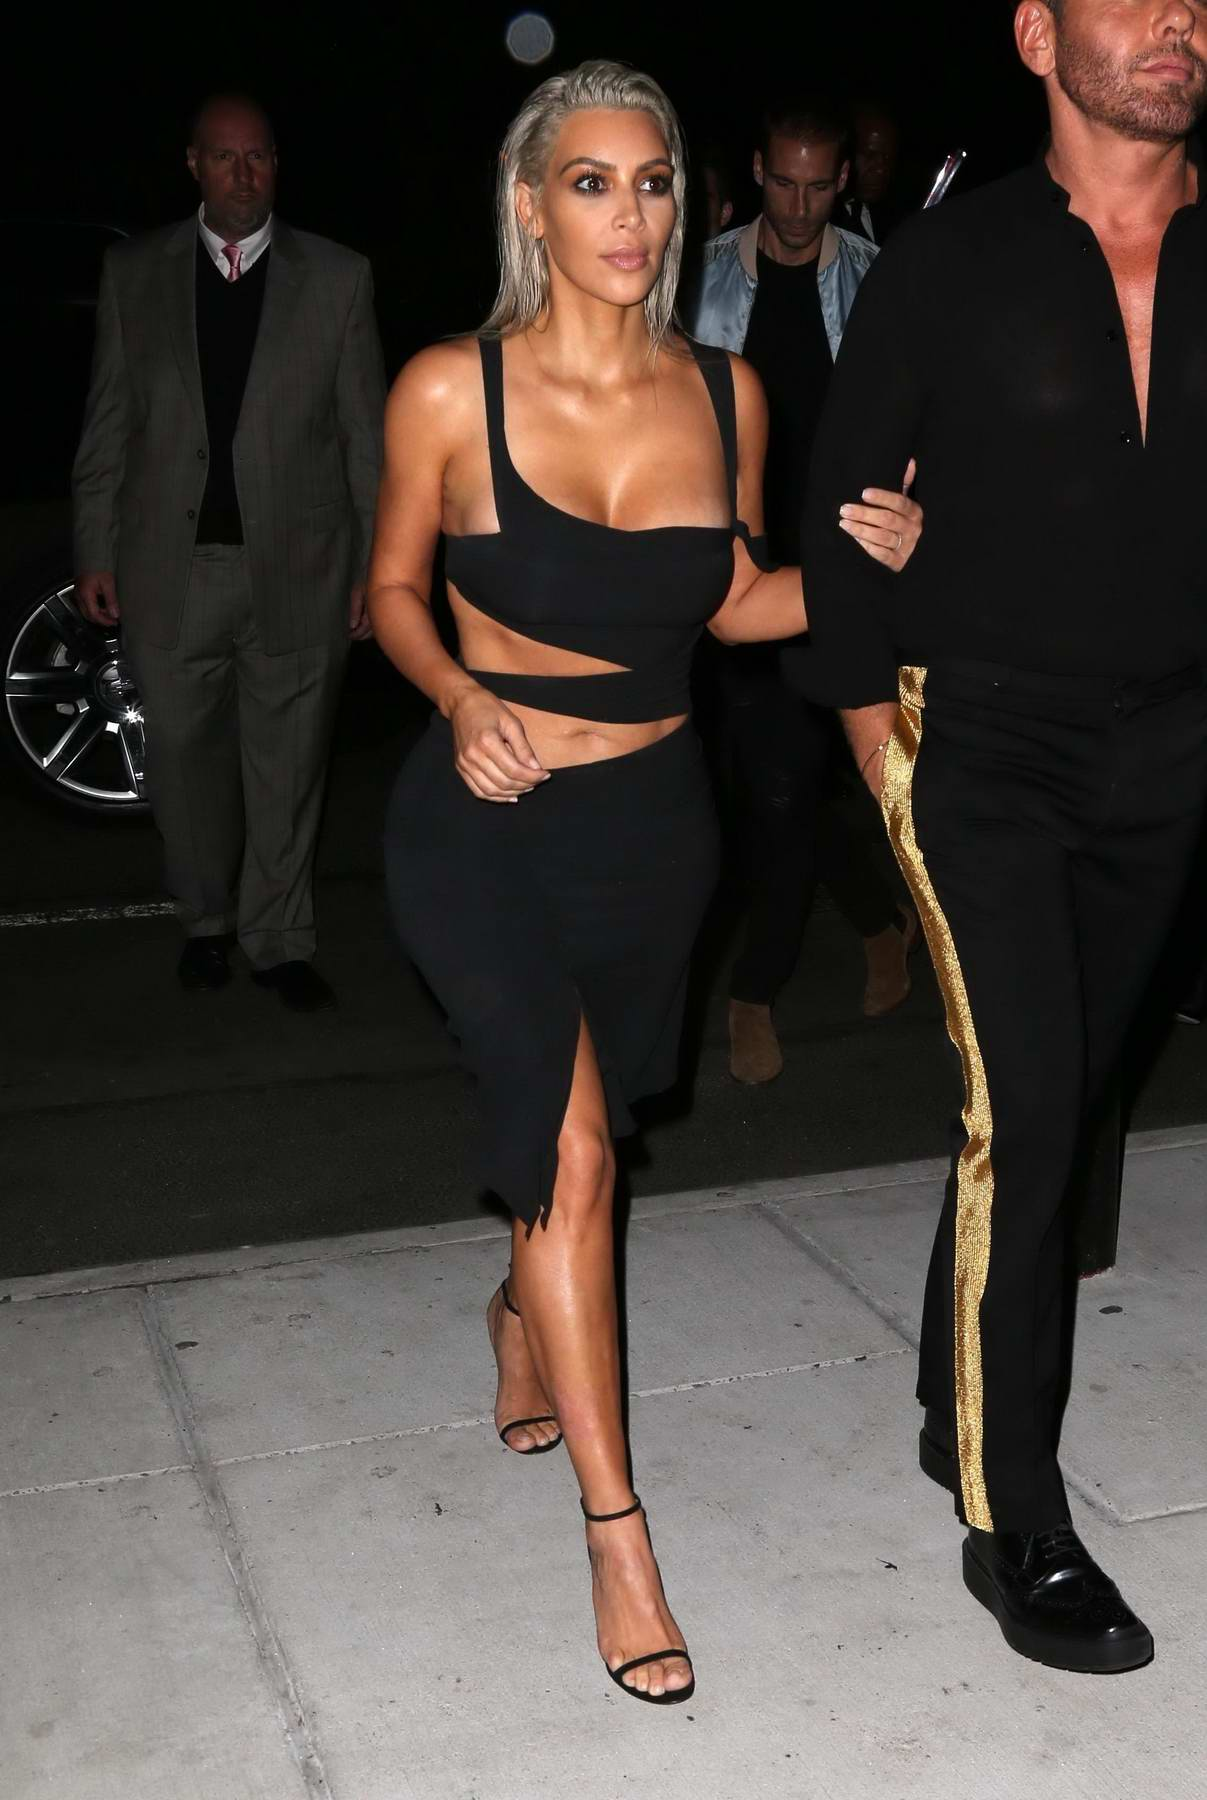 Kim Kardashian arrives at the Mert and Marcus book launch in New York